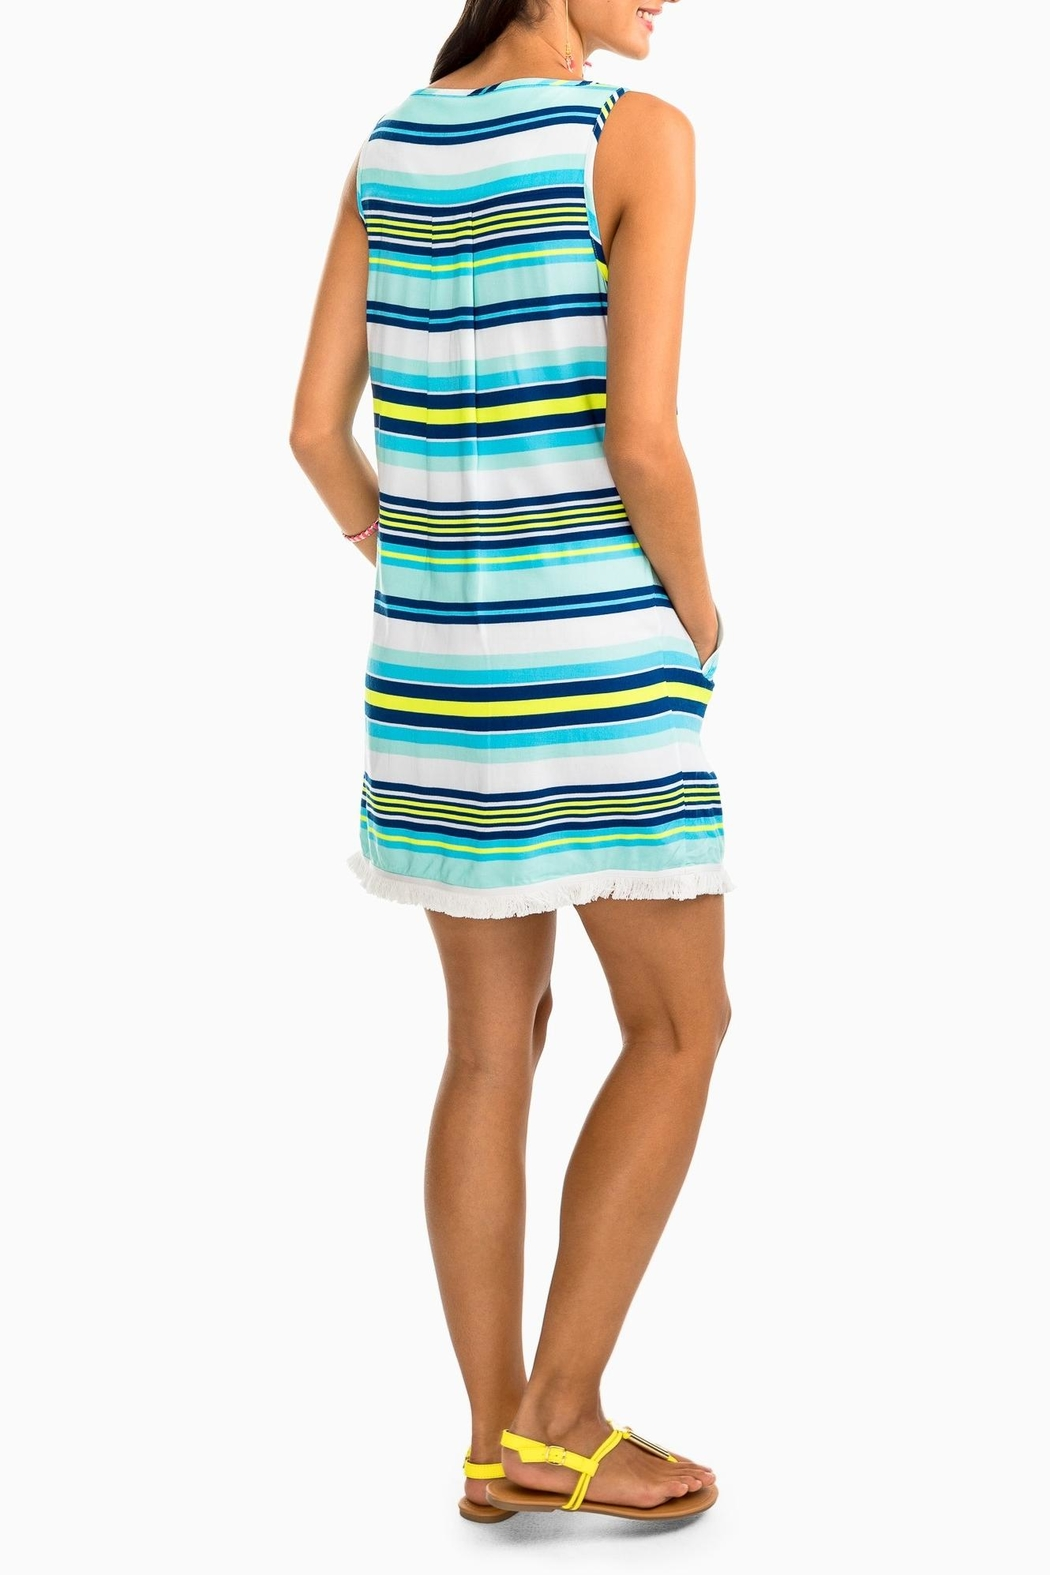 Southern Tide Corrine Stripe Dress - Side Cropped Image